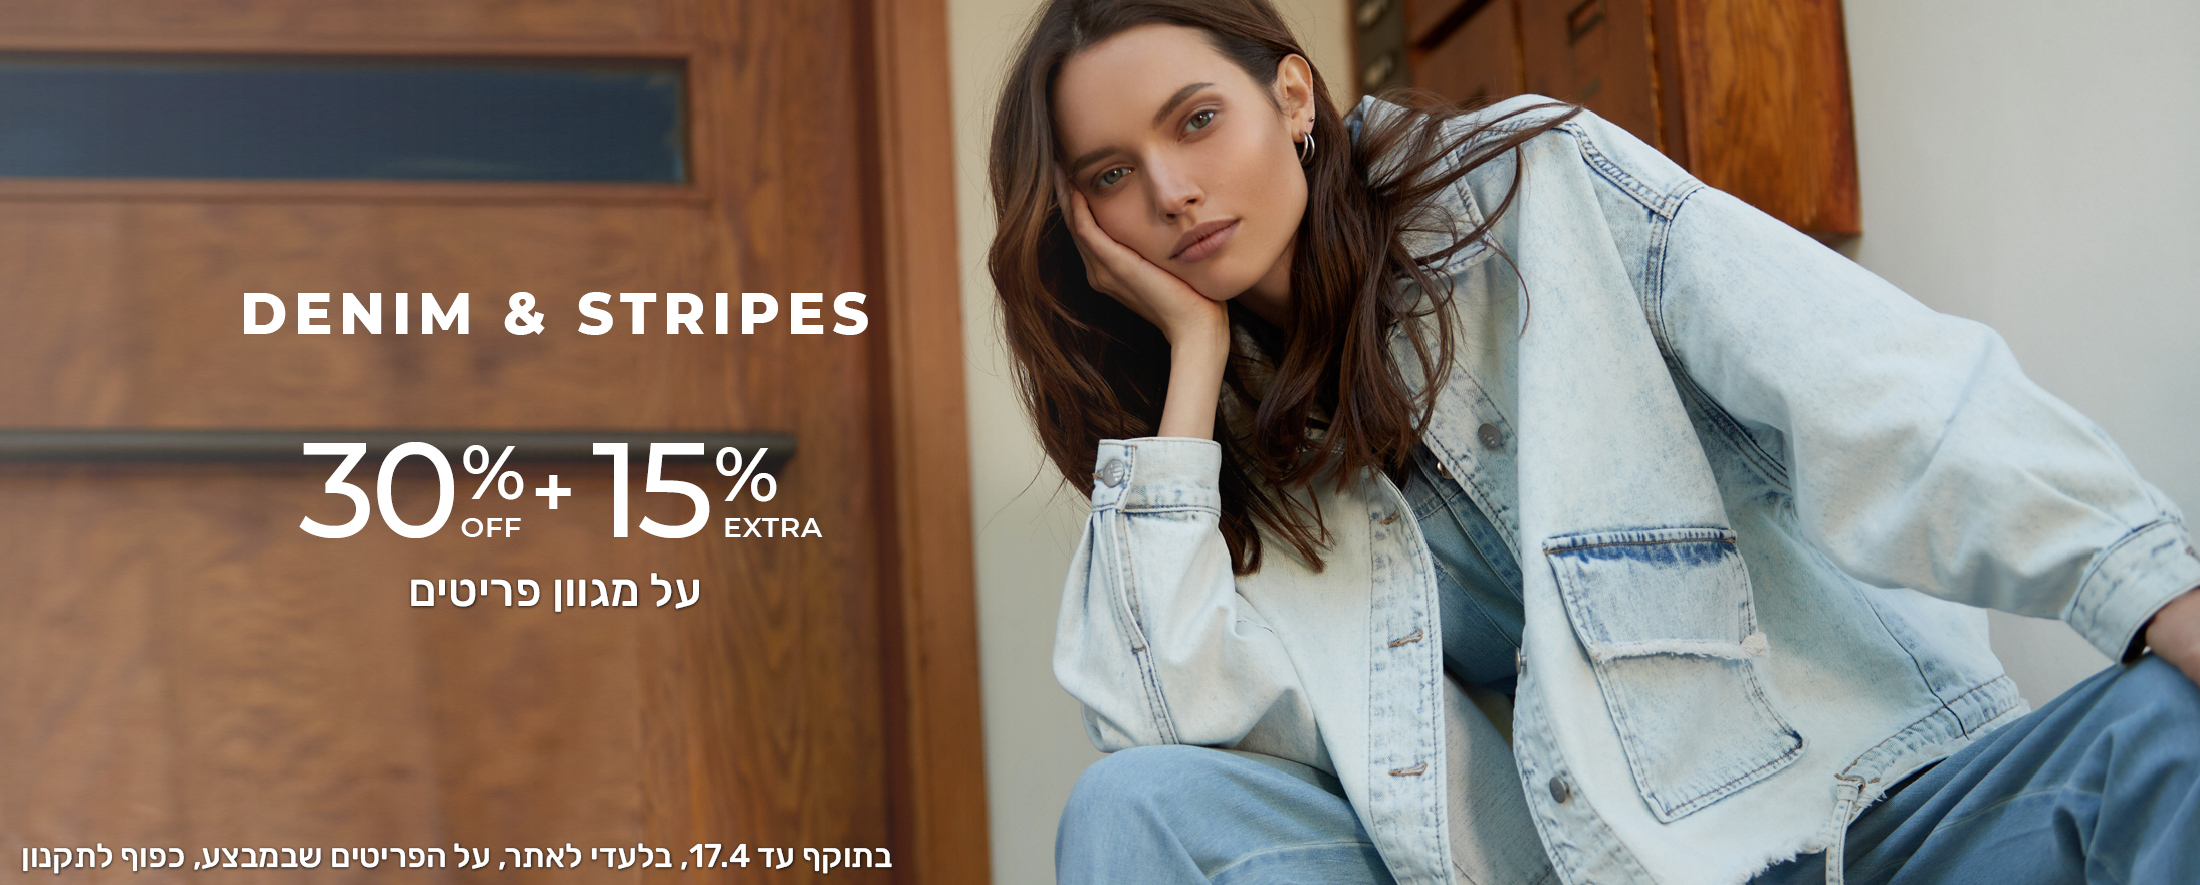 DENIM AND STRIPES 30%+15%